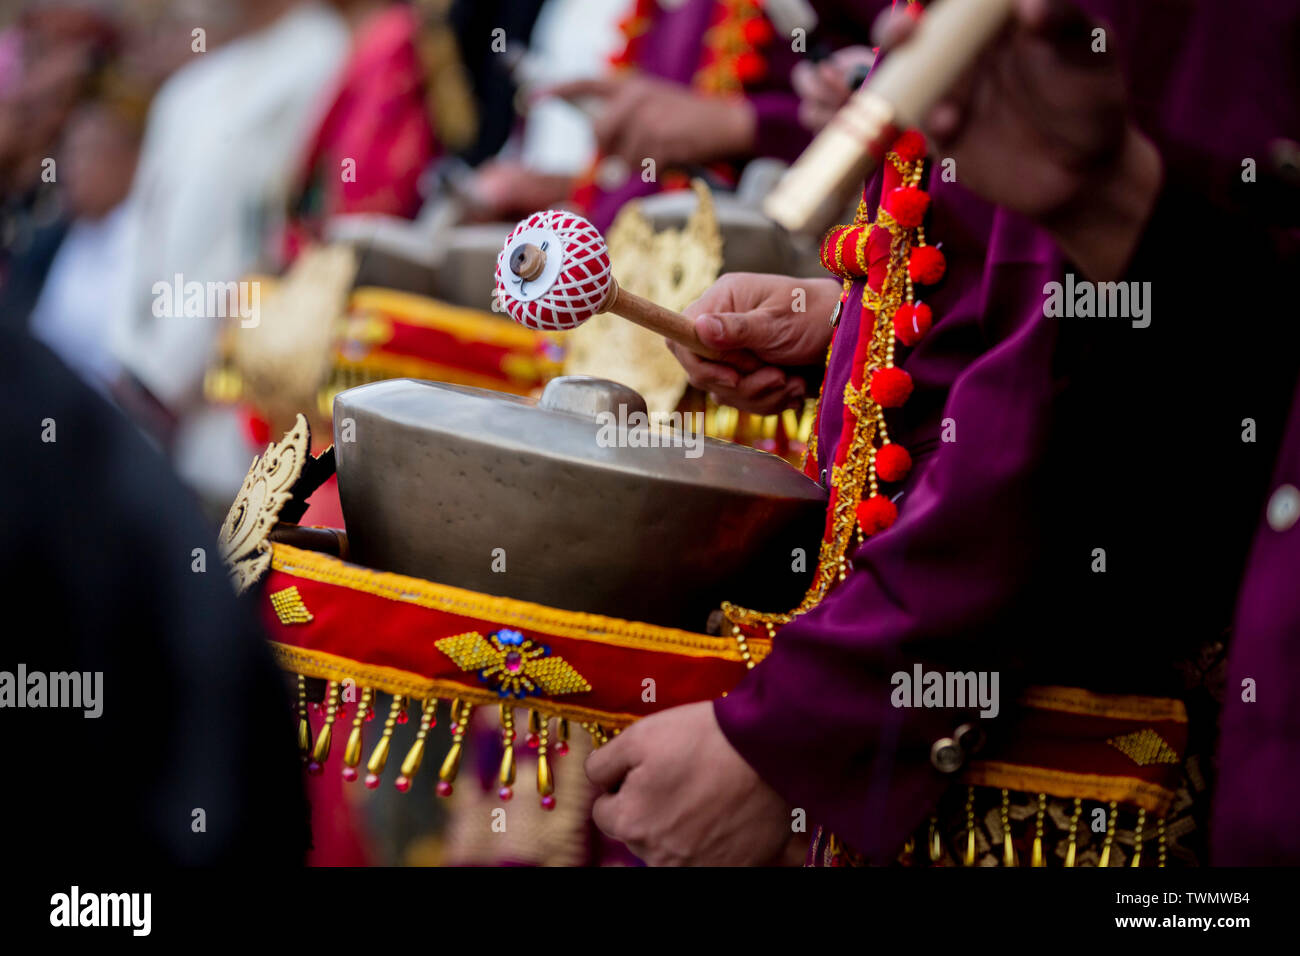 Berlin, Germany. 21st June, 2019. A member of an Indonesian wedding procession from Lombok plays a percussion instrument during the Fête de la Musique in front of the concert hall at the Gendarmenmarkt. With over 150 venues in all twelve Berlin districts concerts Credit: Christoph Soeder/dpa/Alamy Live News - Stock Image